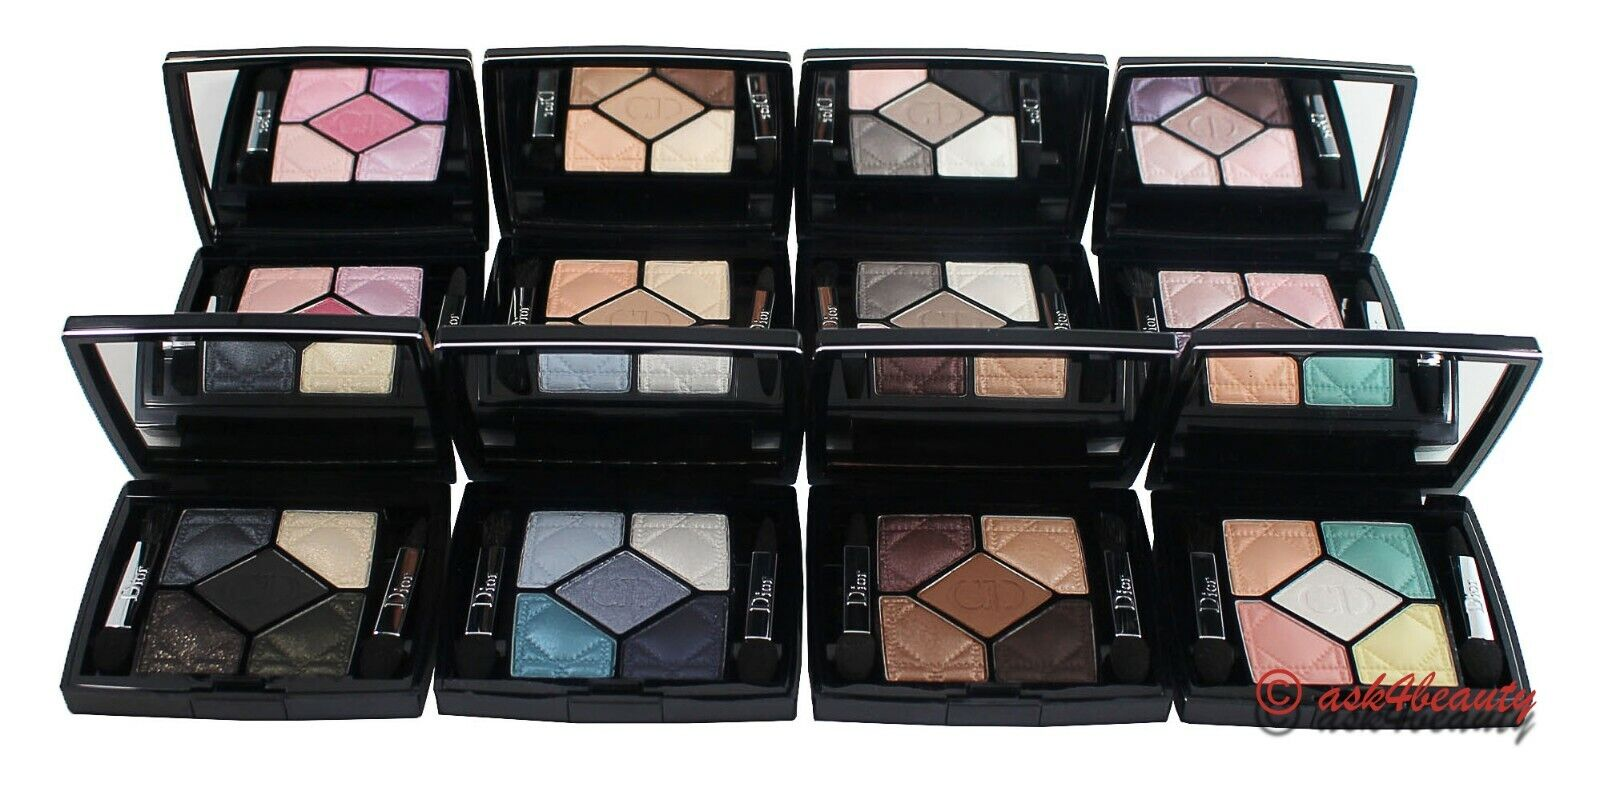 Dior 5 Couleurs Eyeshadow Palette Choose Shade .21oz/6g New&